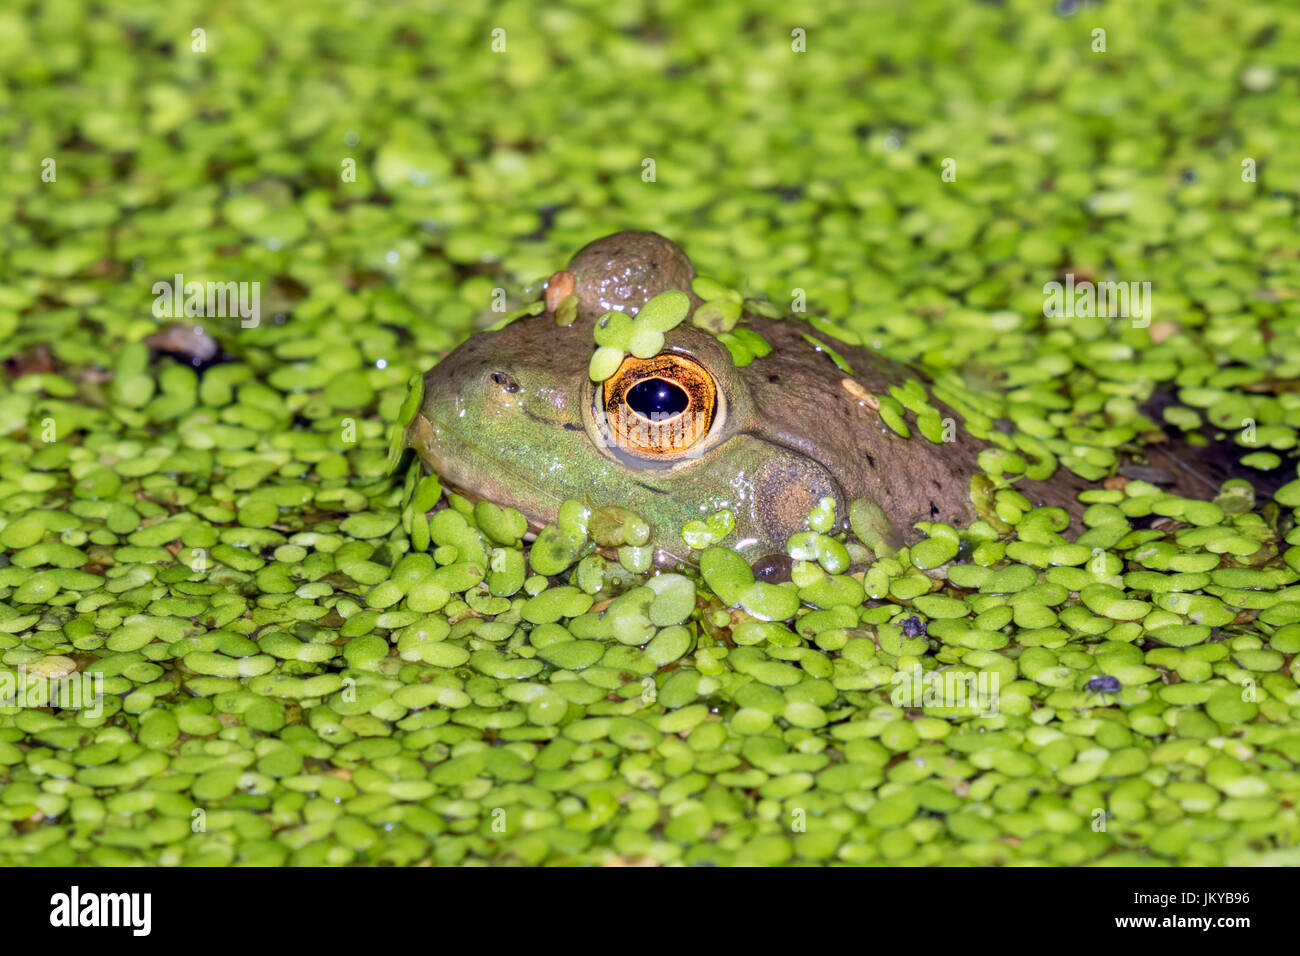 American bullfrog (Lithobates catesbeianus or Rana catesbeiana) looking through duckweed in a lake, Ledges State - Stock Image